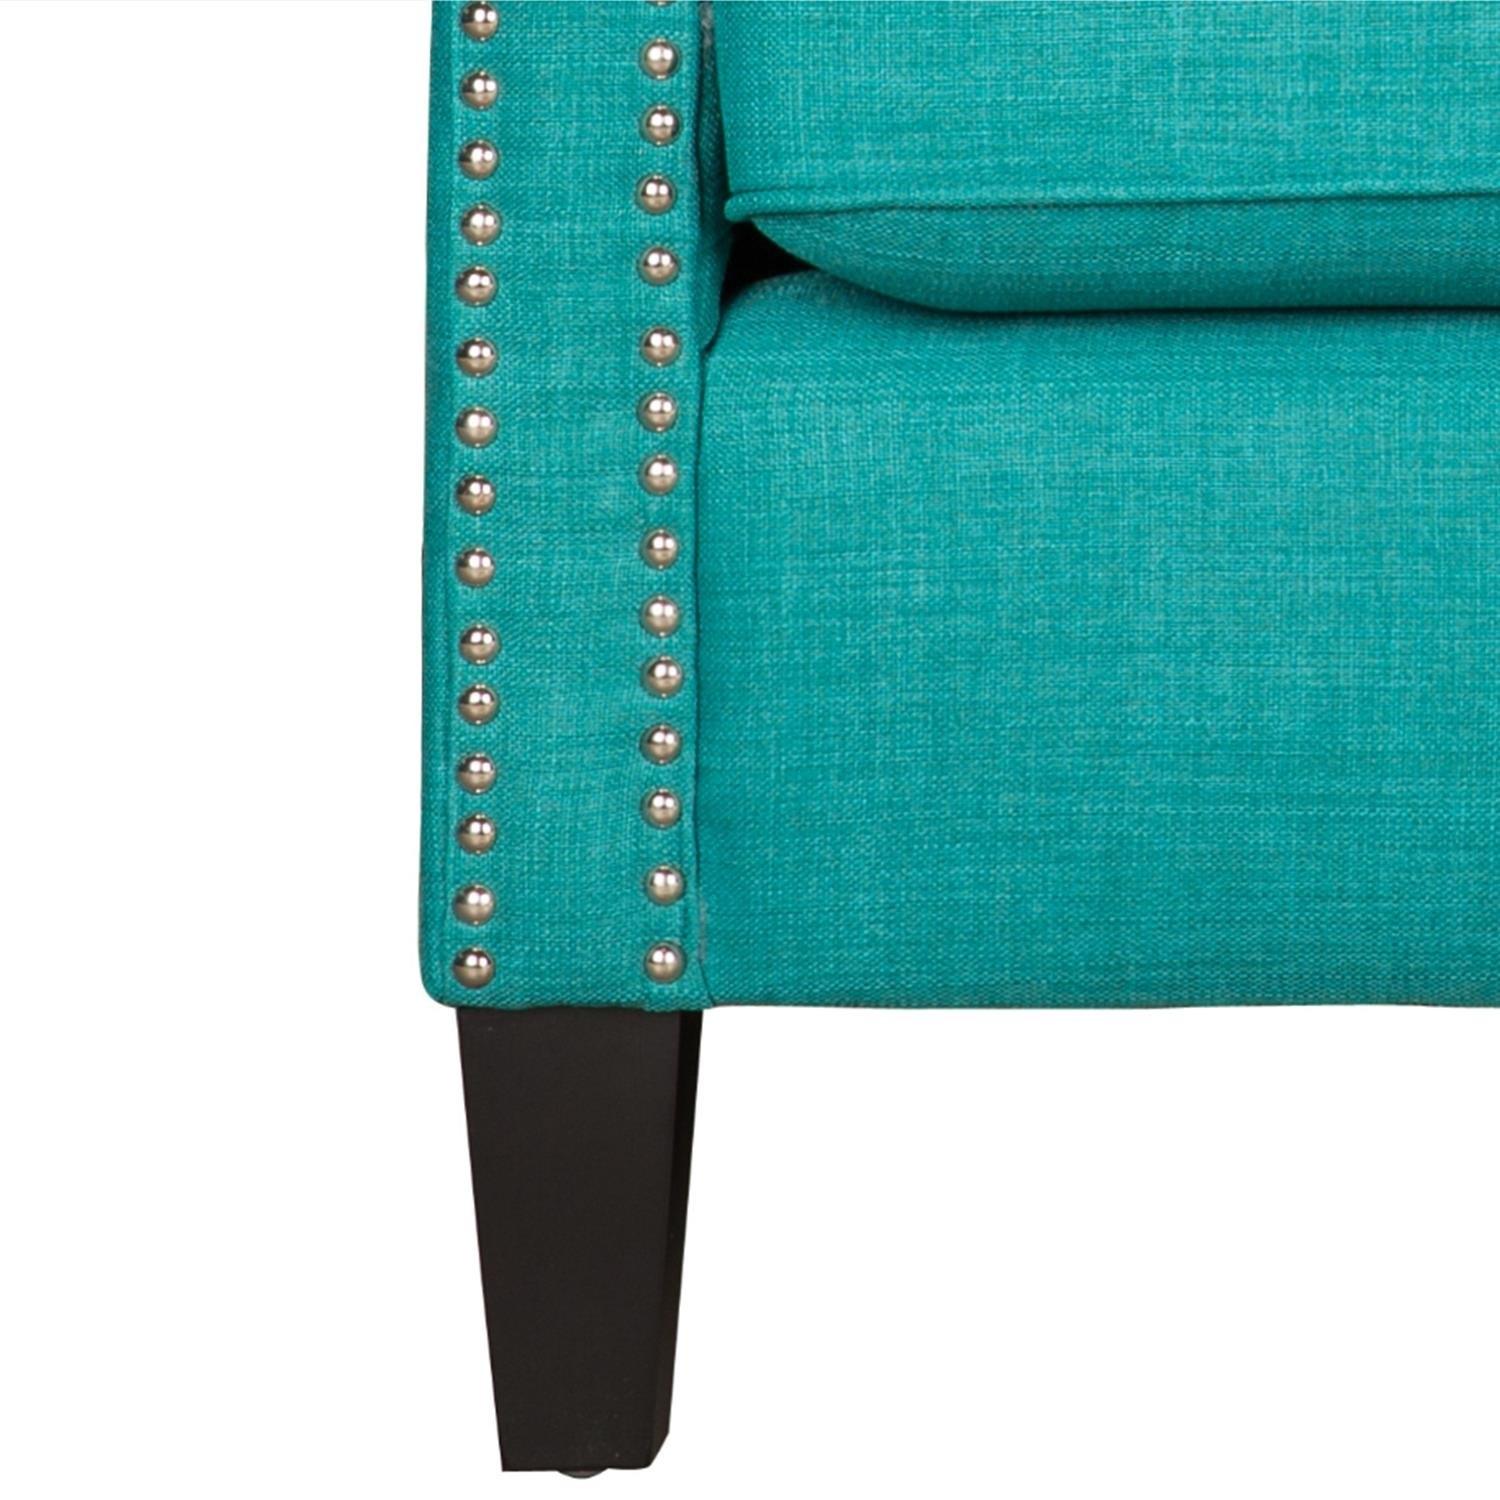 Magnificent Cambridge Bridgehampton Accent Chair With Nailhead Trim In Teal Teal Onthecornerstone Fun Painted Chair Ideas Images Onthecornerstoneorg